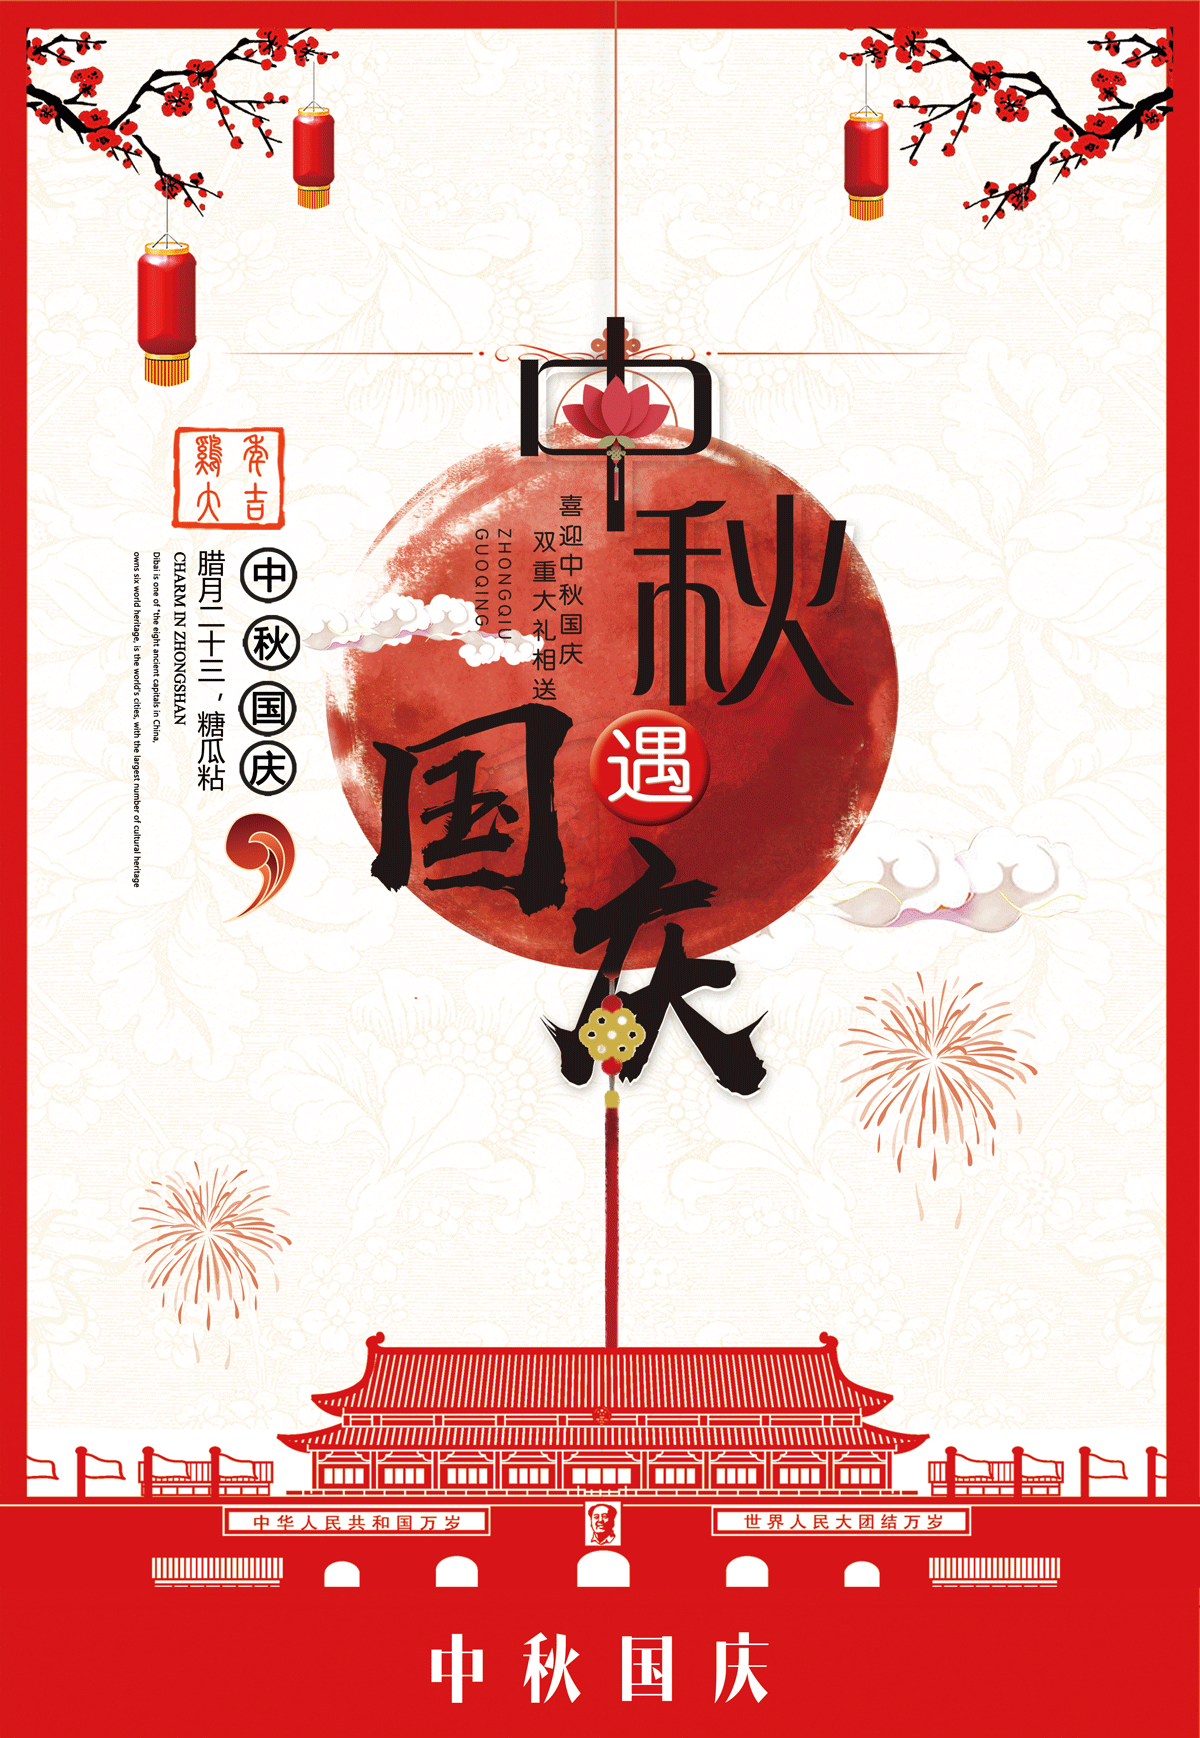 Mid-Autumn Festival and National Day happy China PSD File Free Download